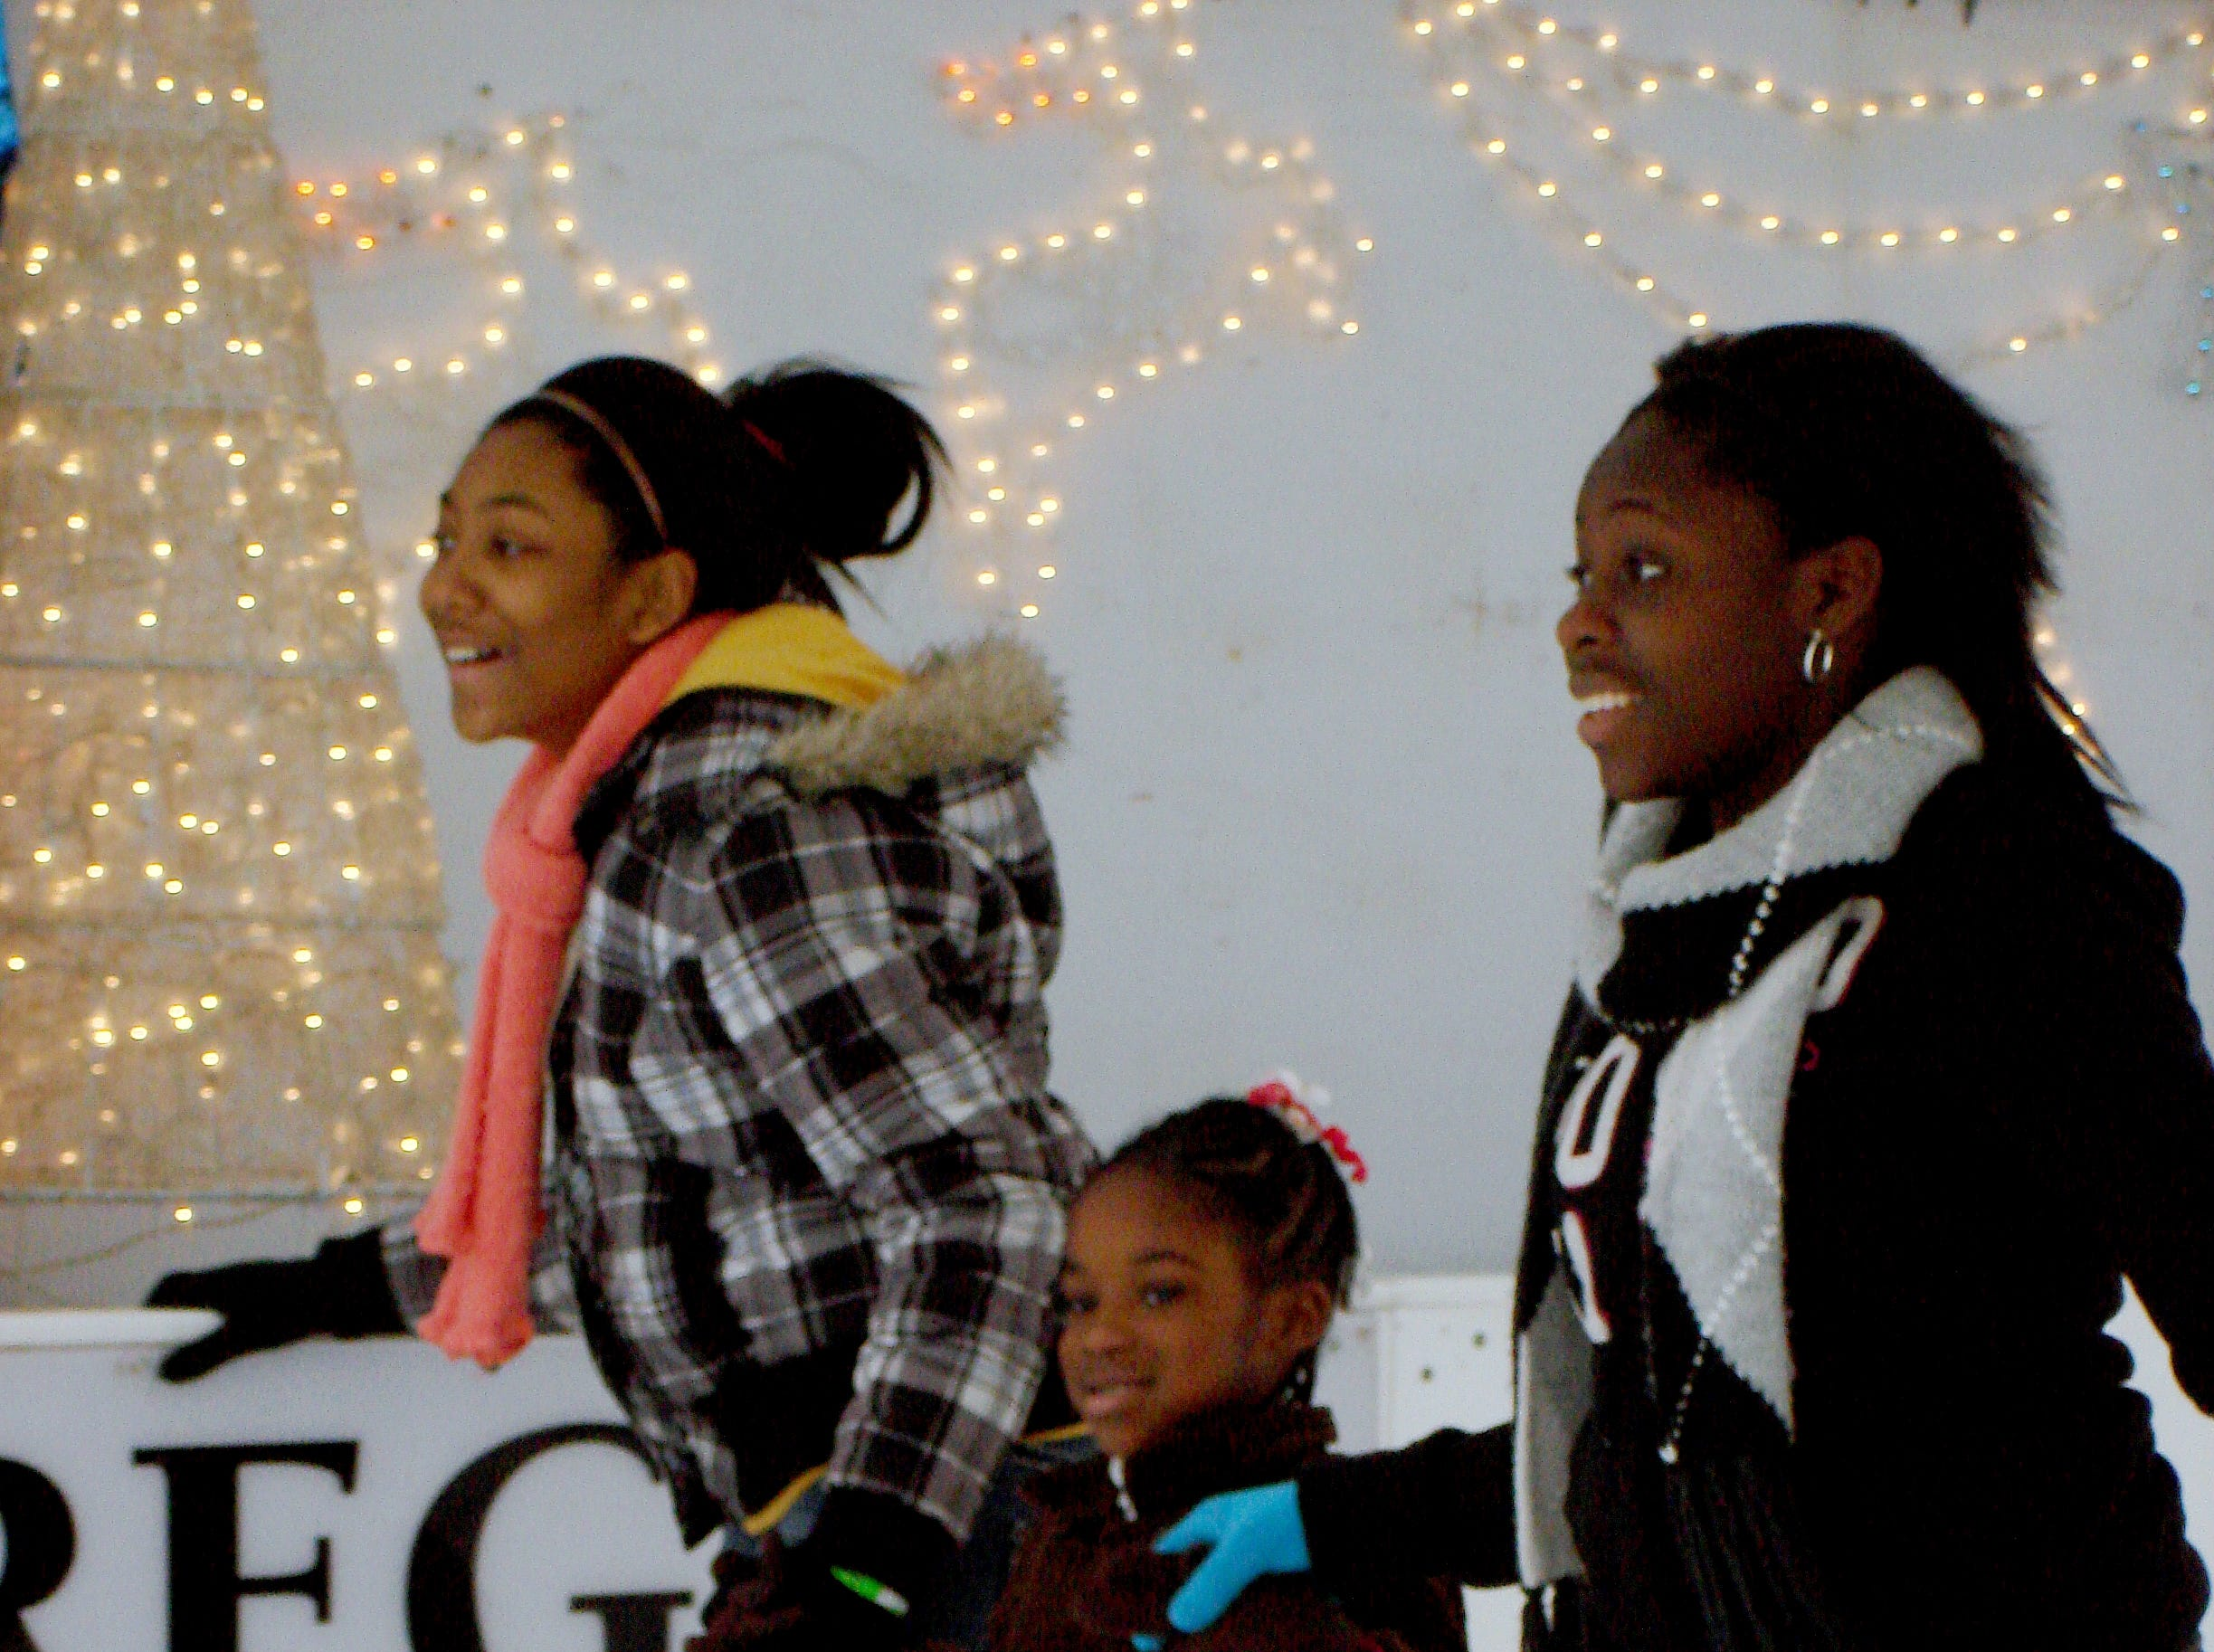 From left, Talayia Kelly, Zi Nzie and Marissa Sexton, members of the Boys & Girls Club, have fun while ice skating on Market Square.